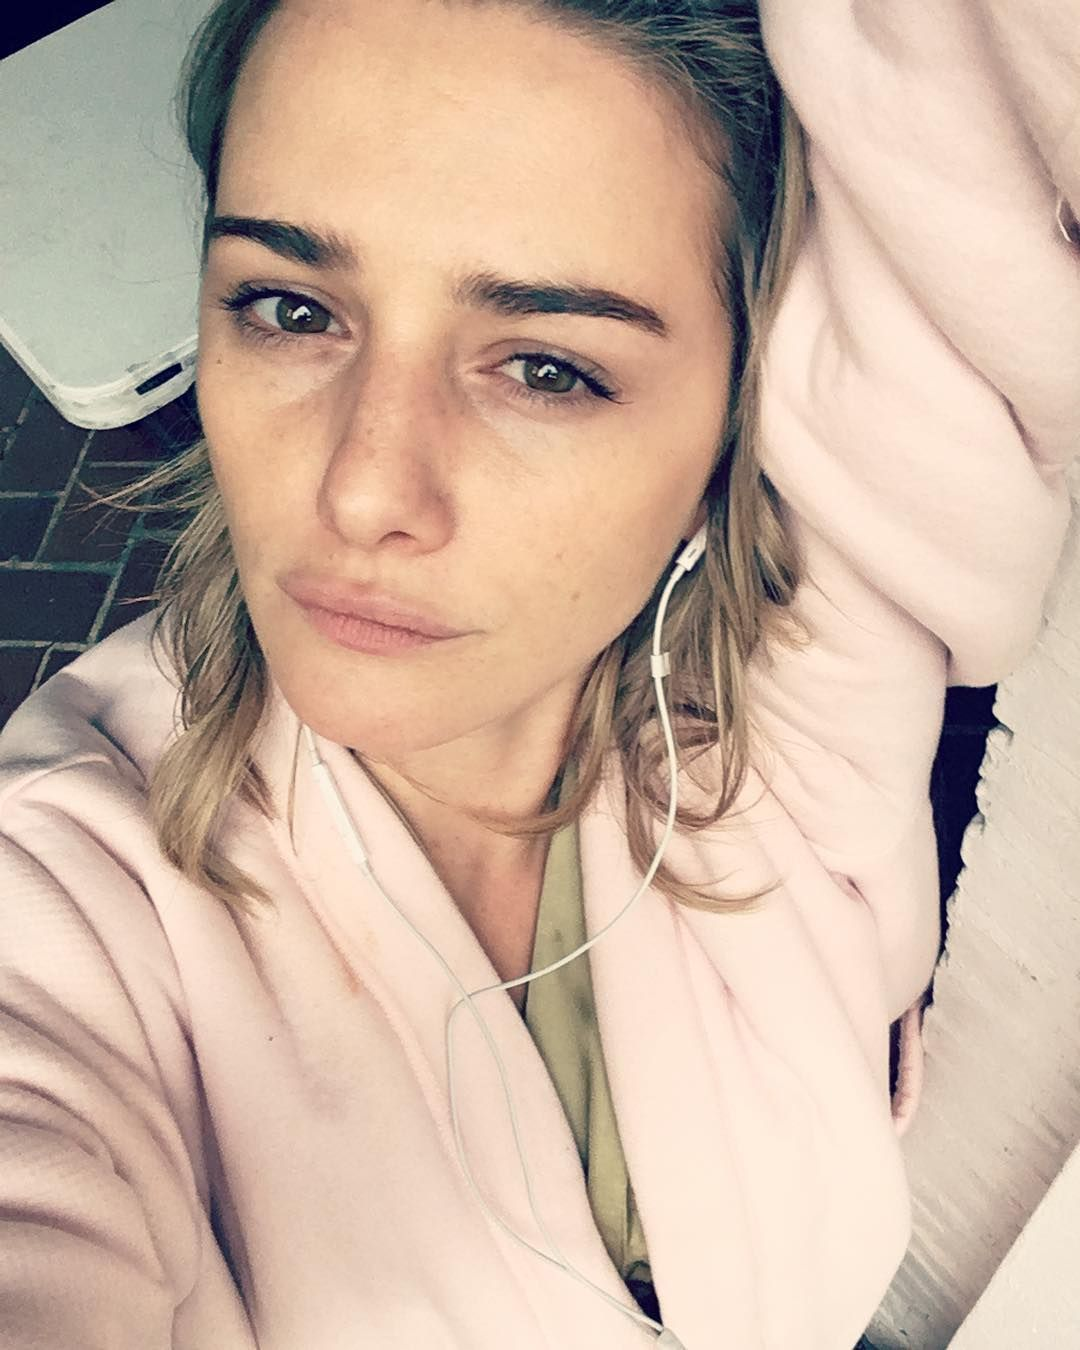 Instagram Addison Timlin naked (77 pics), Pussy